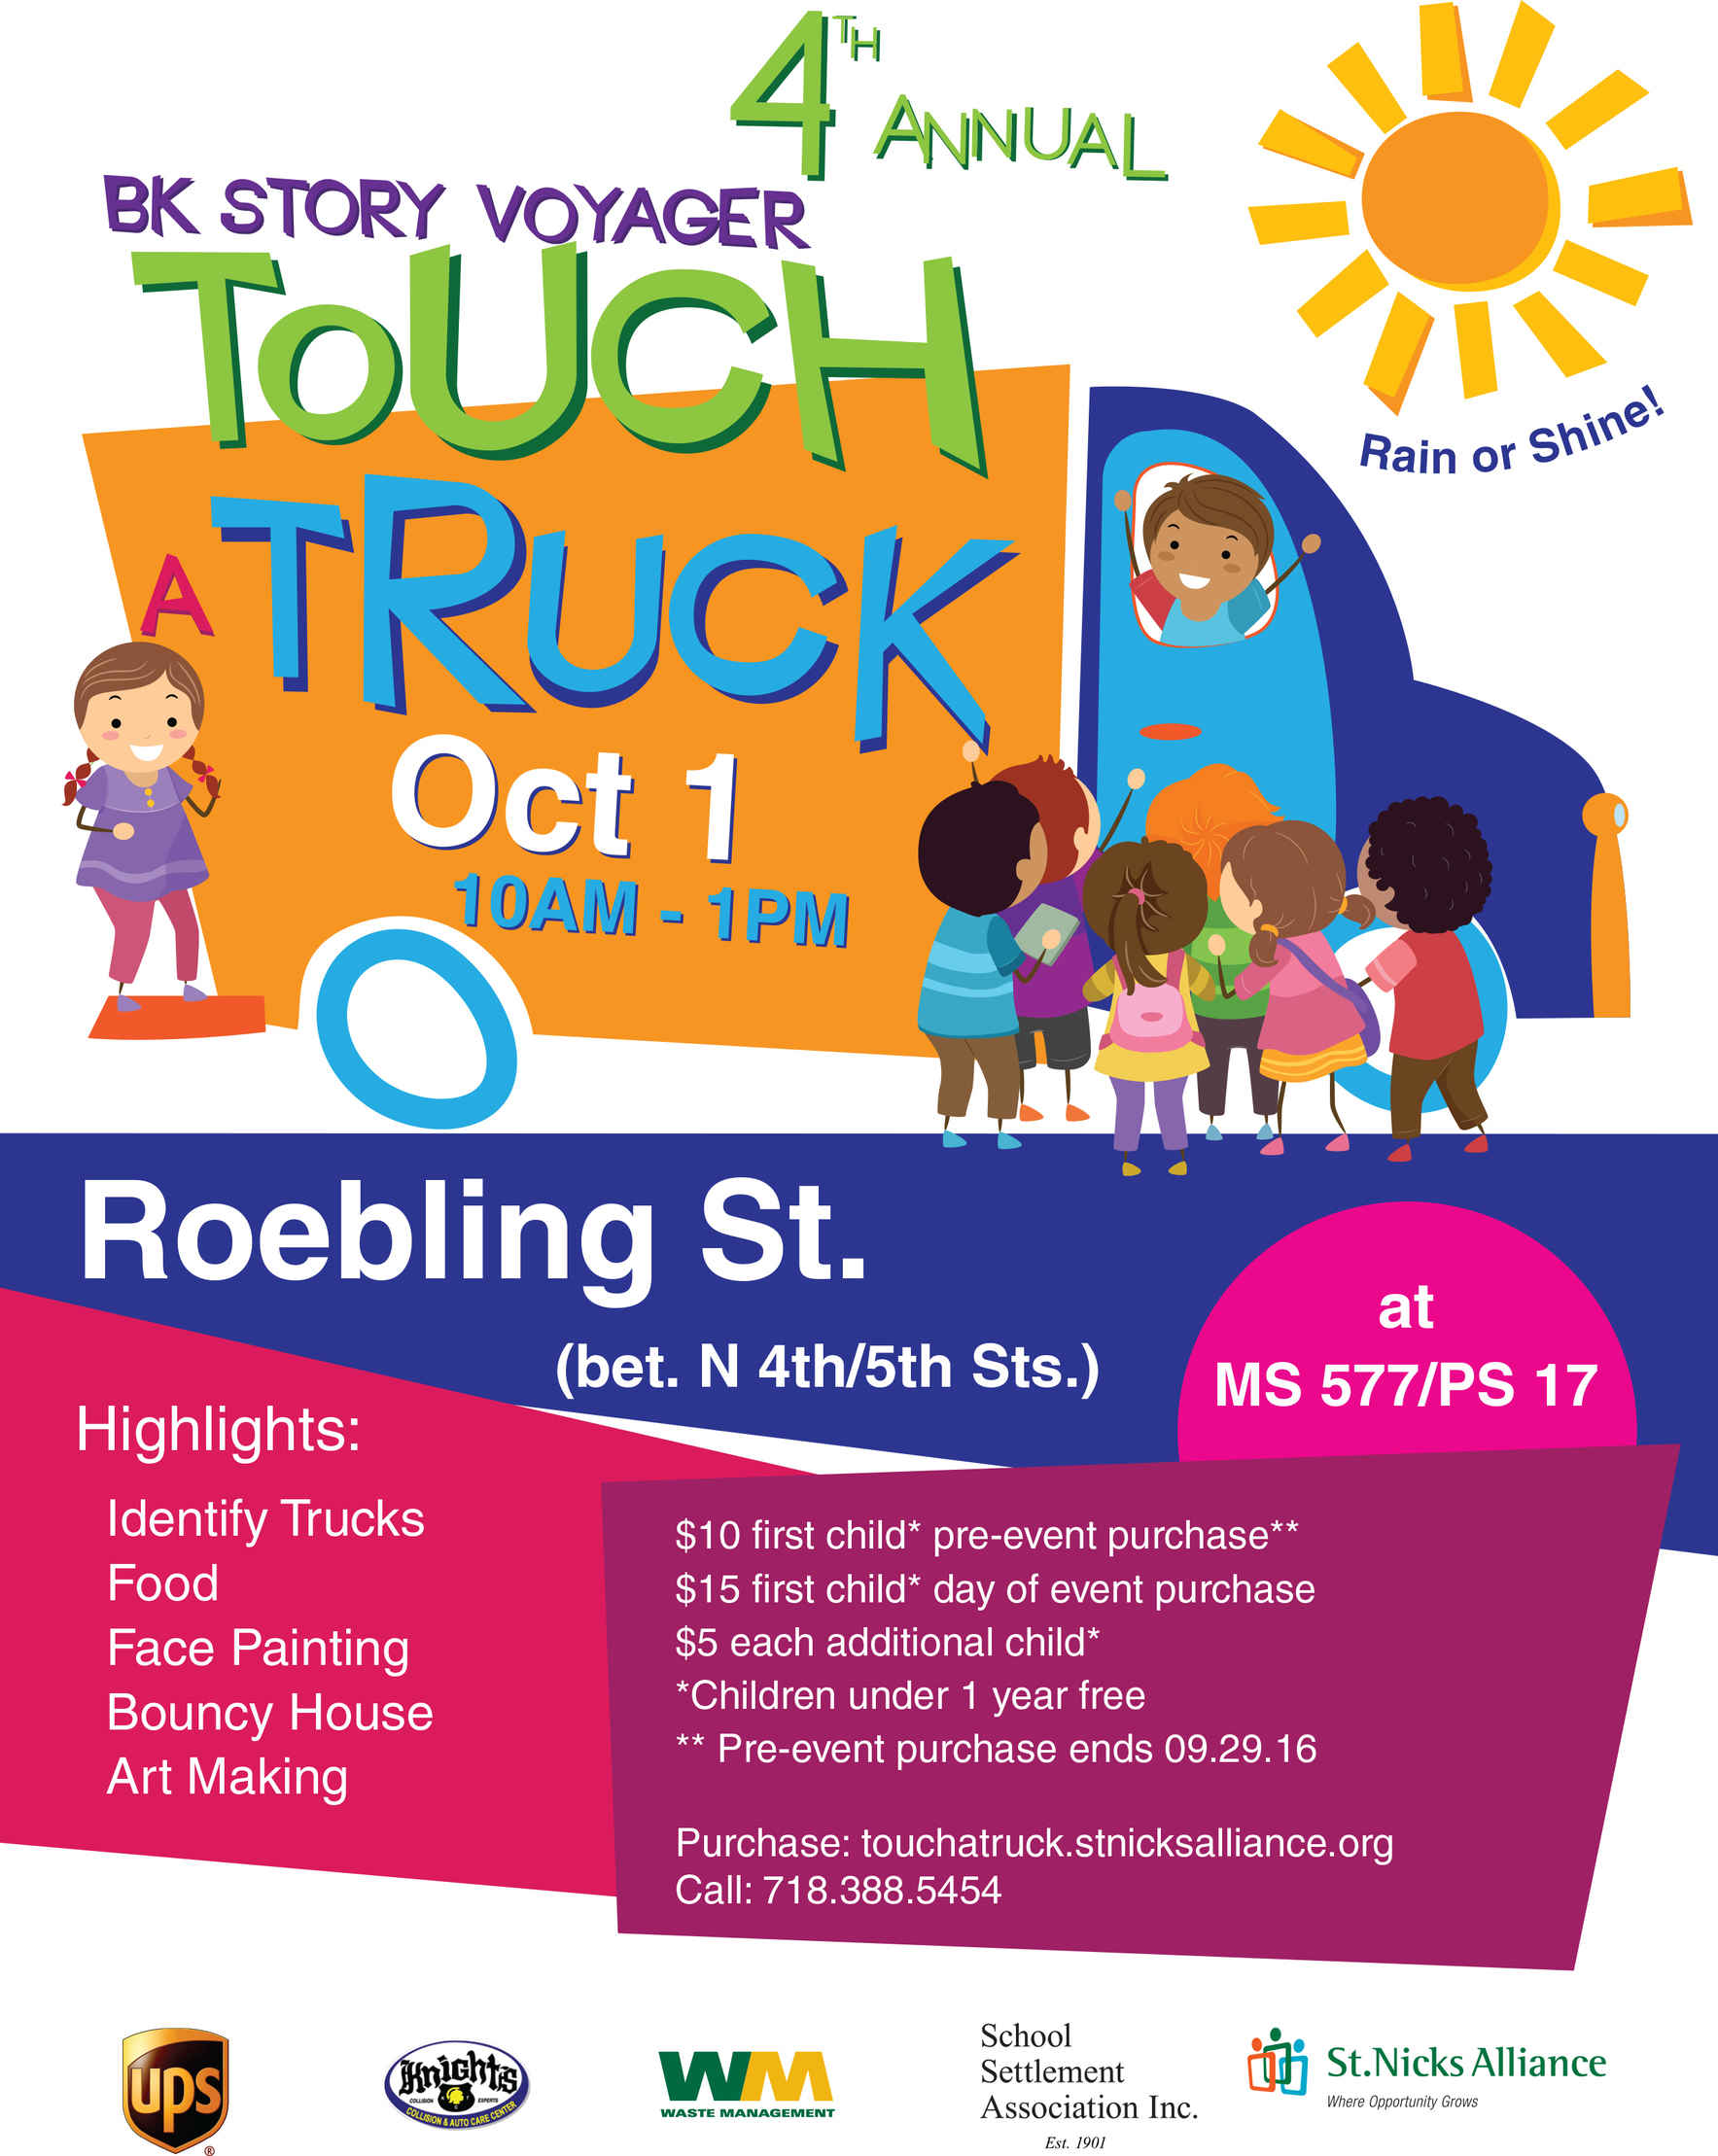 4th Annual BK Story Voyager Touch A Truck - Pre-event sale Save $5 Until September 29th! image